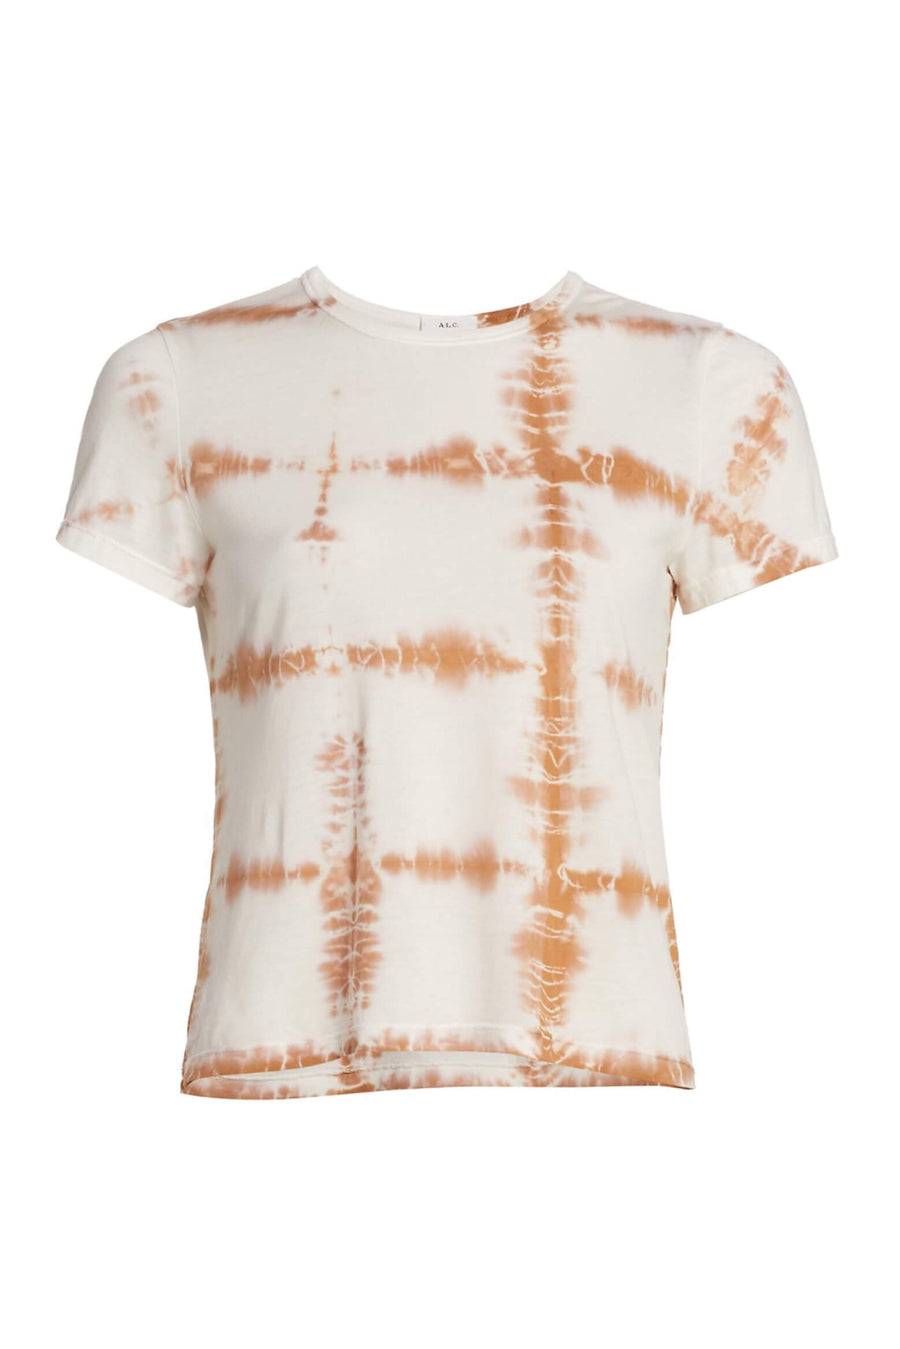 ALC Bambina Tee in Desert Beige Tie Dye from The New Trend